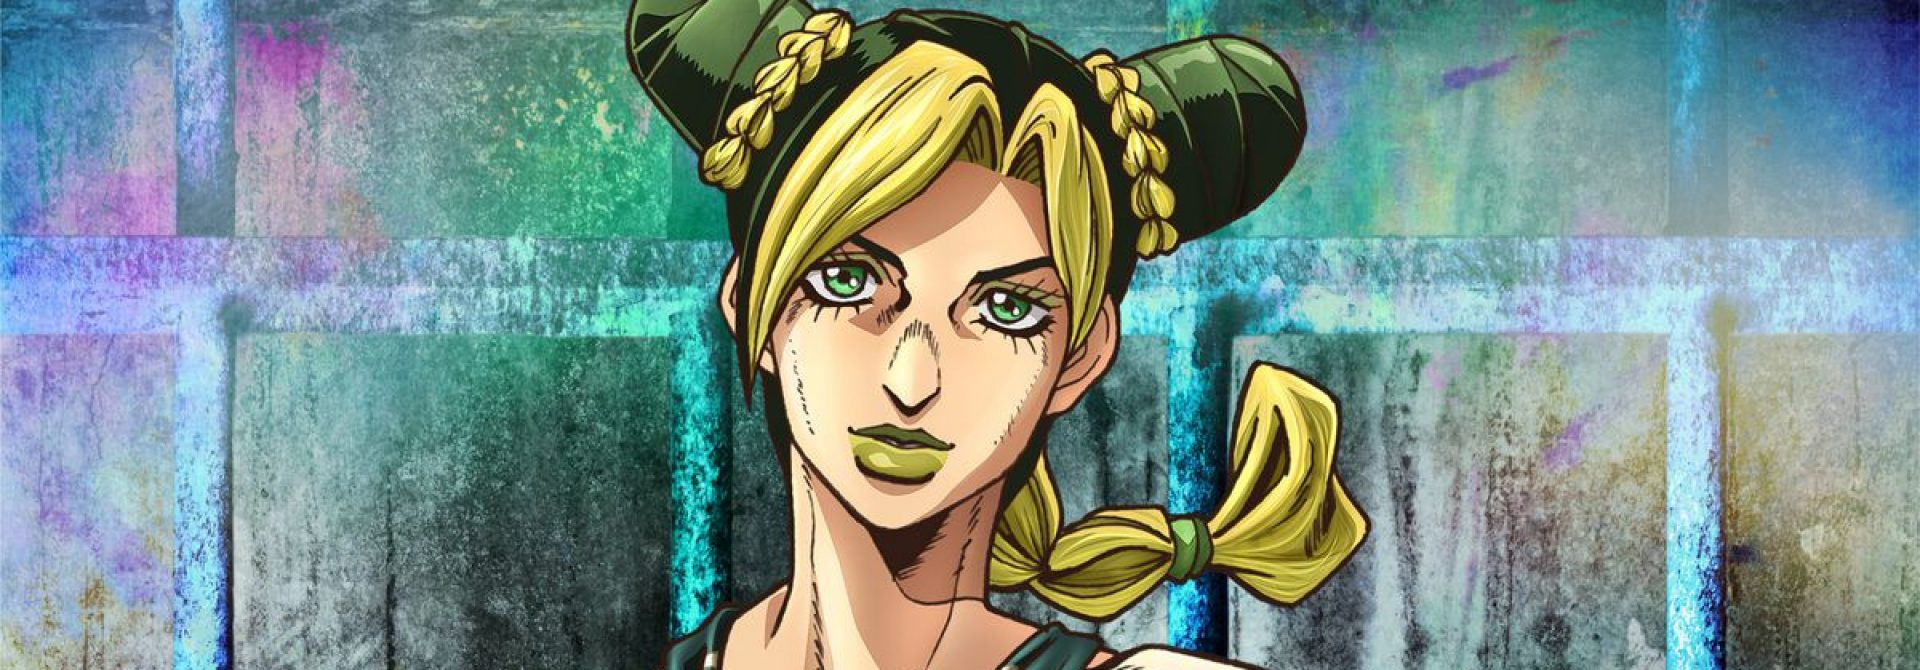 Jojo's Bizarre adventure part 6: Stone Ocean Trailer